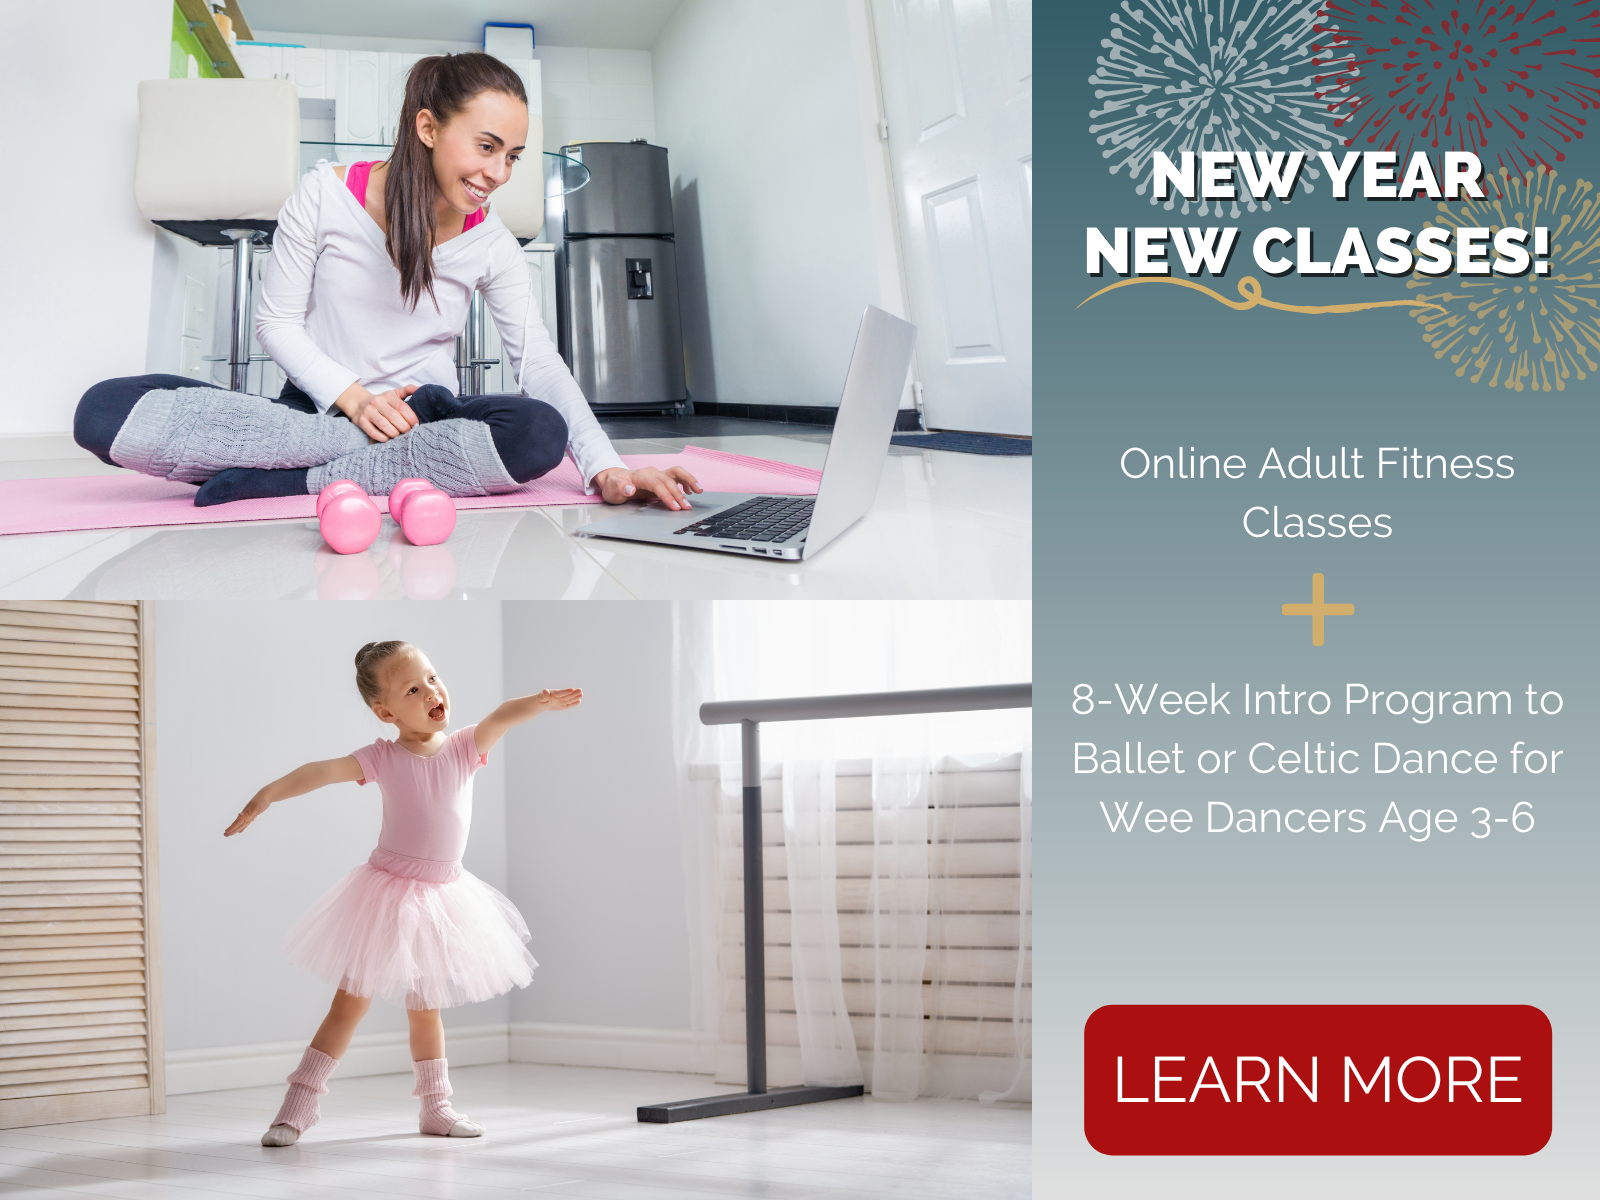 click-for-information-on-new-january-classes-for-adults-and-preschool-kids